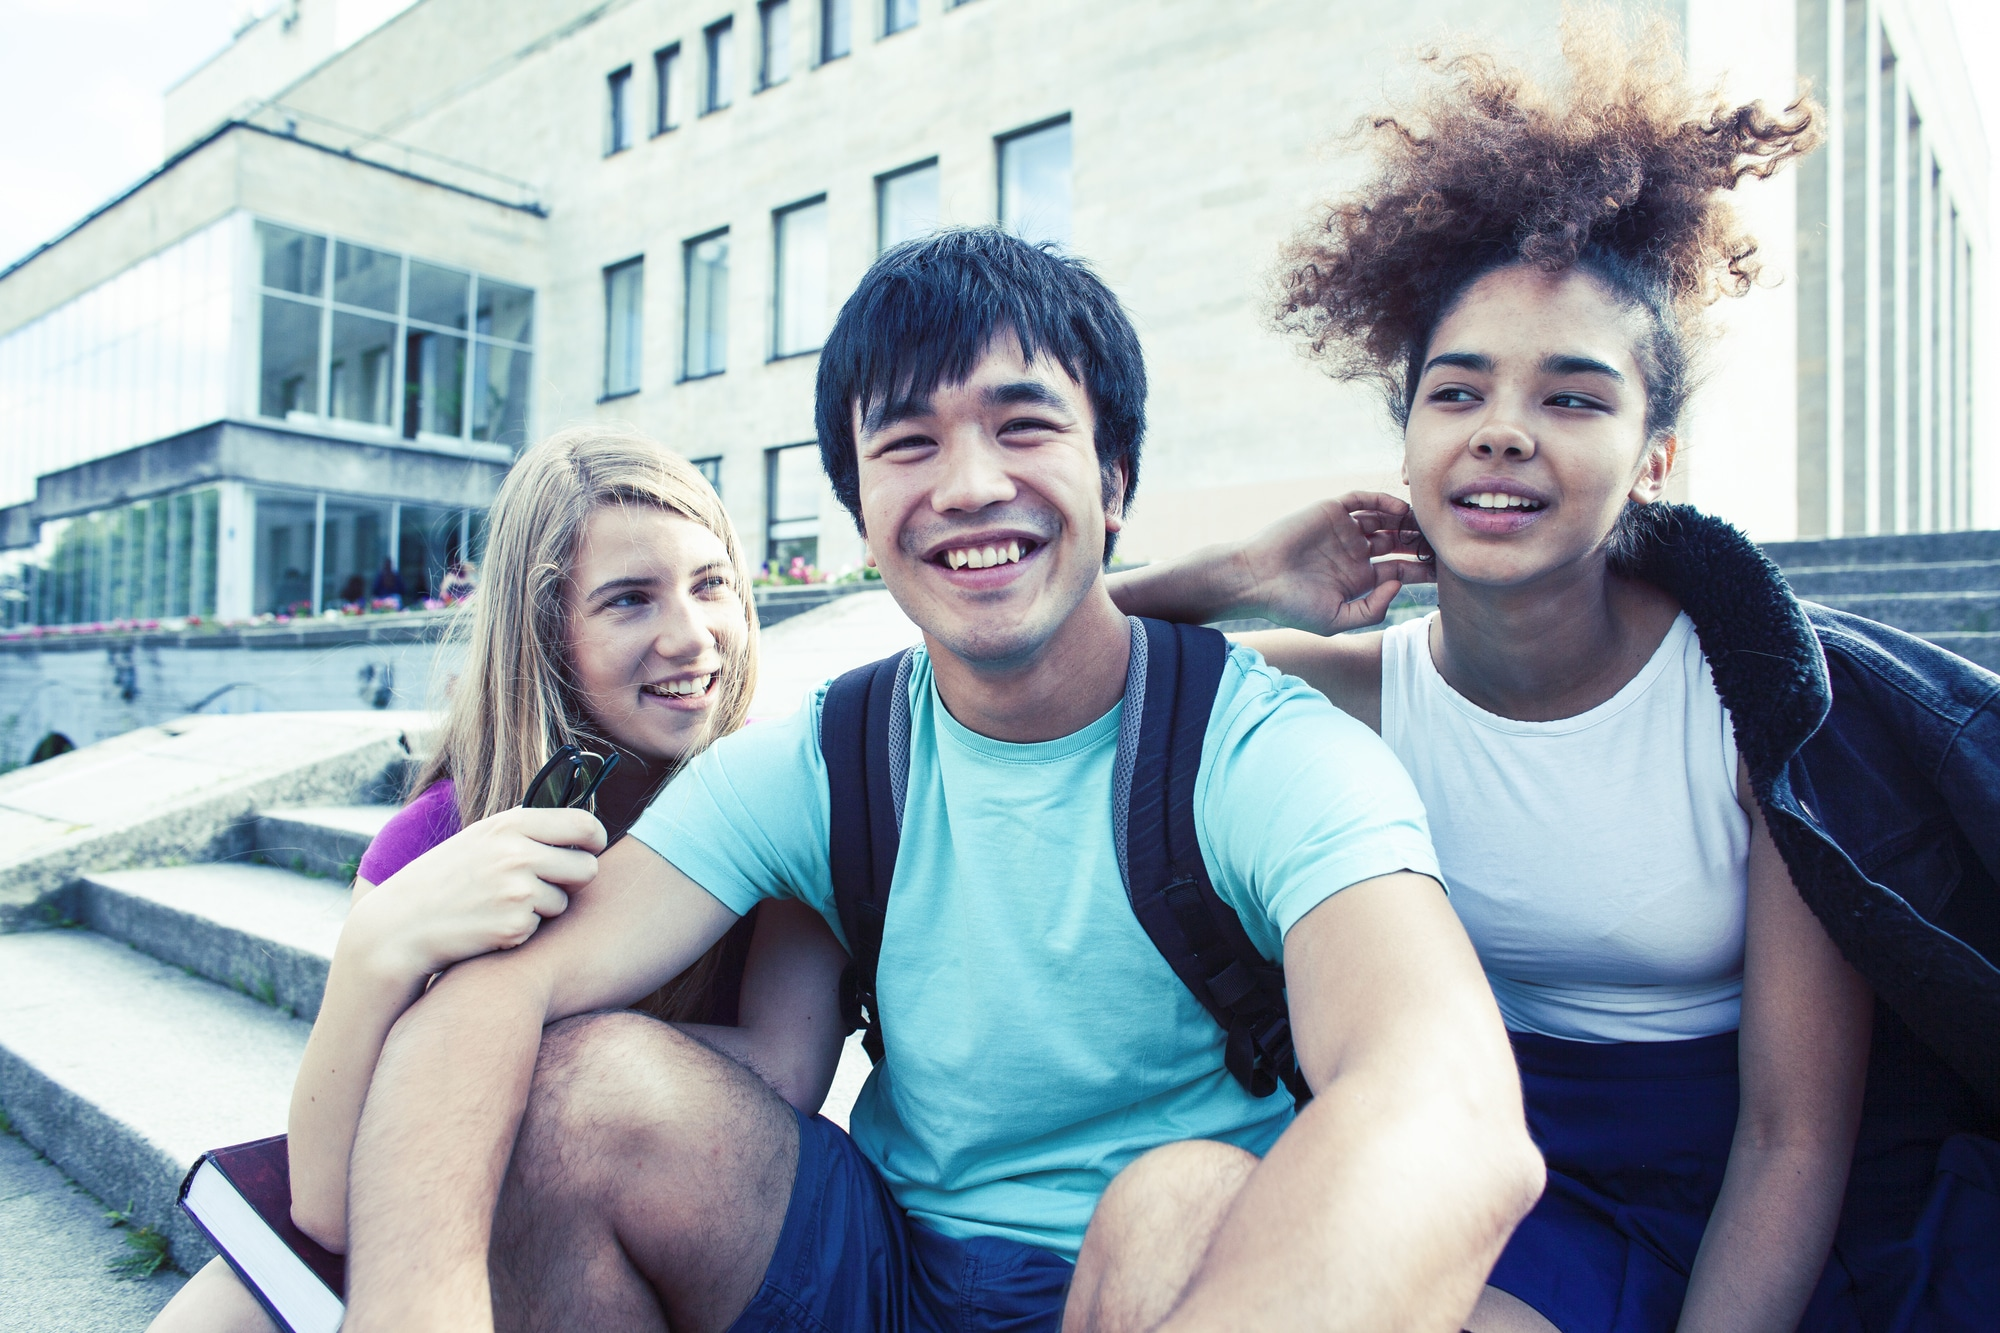 cute group of teenages at the building of university with books huggings, diversity nations real students lifestyle closeup